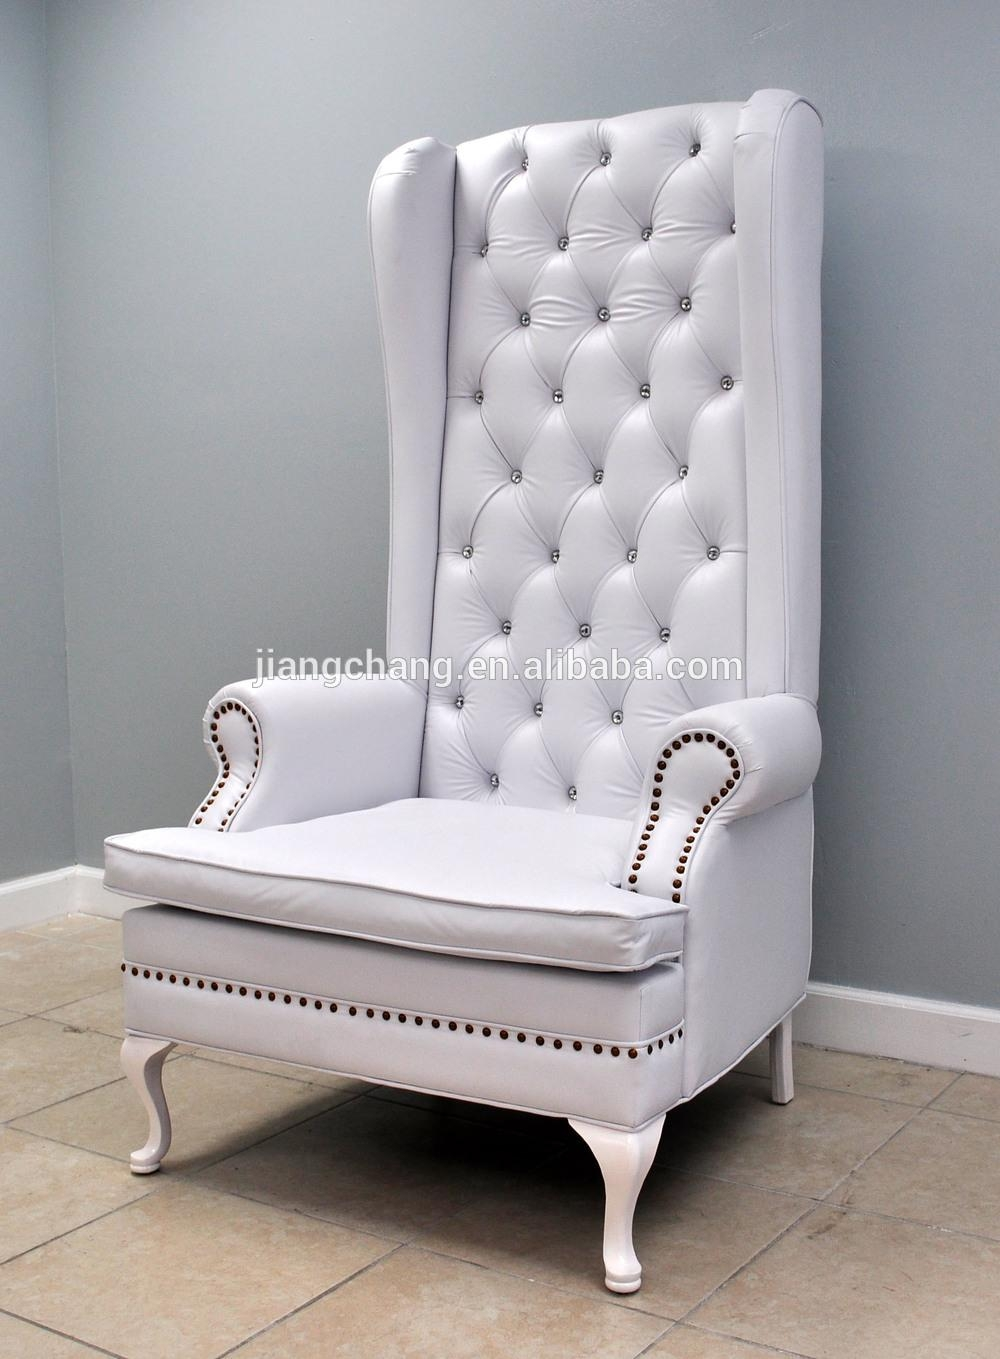 Sofa Seats Online India | Sofa Menzilperde | Tehranmix Decoration Pertaining To Sofas With High Backs (Image 15 of 20)